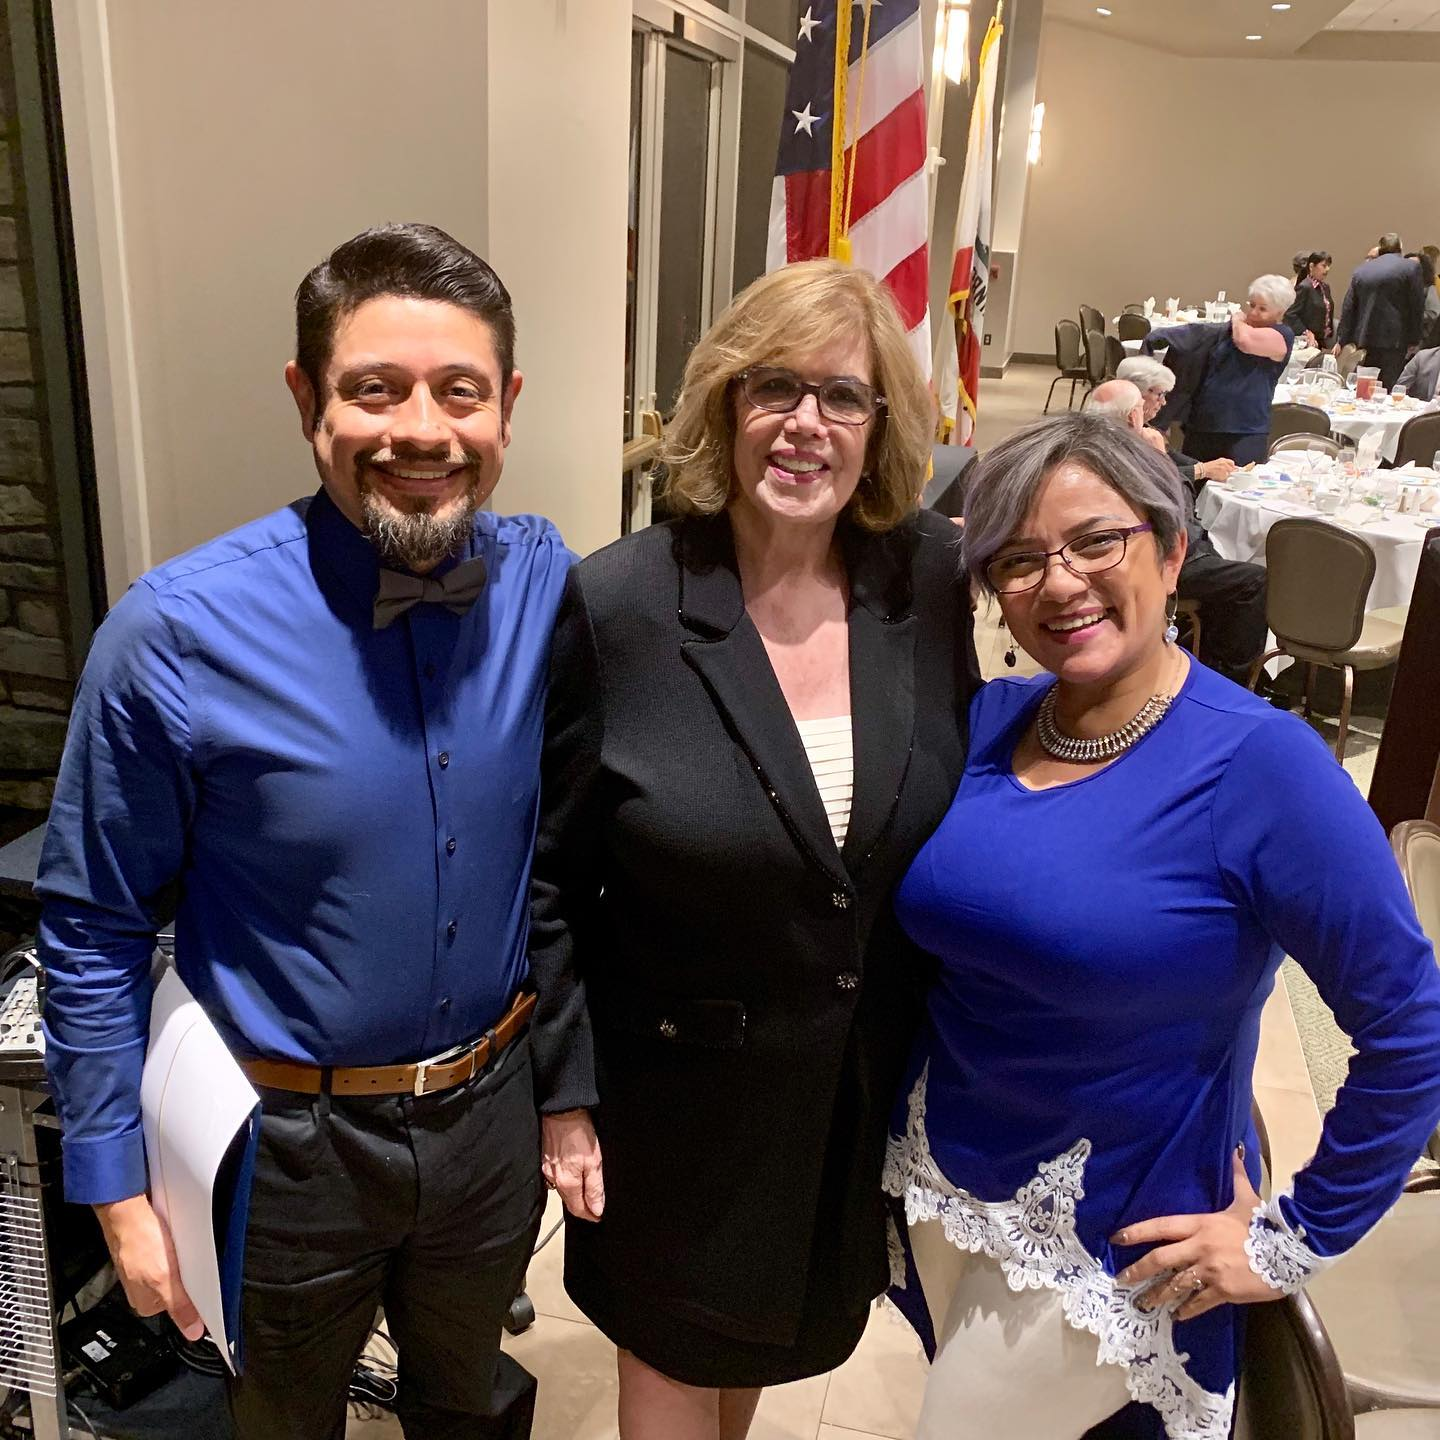 PHOTO BY JESUS TORRES   Moises Rios-Hernandez, Martha Sodetani and Cecilia Gonez at last week's Coordinating Council awards dinner.